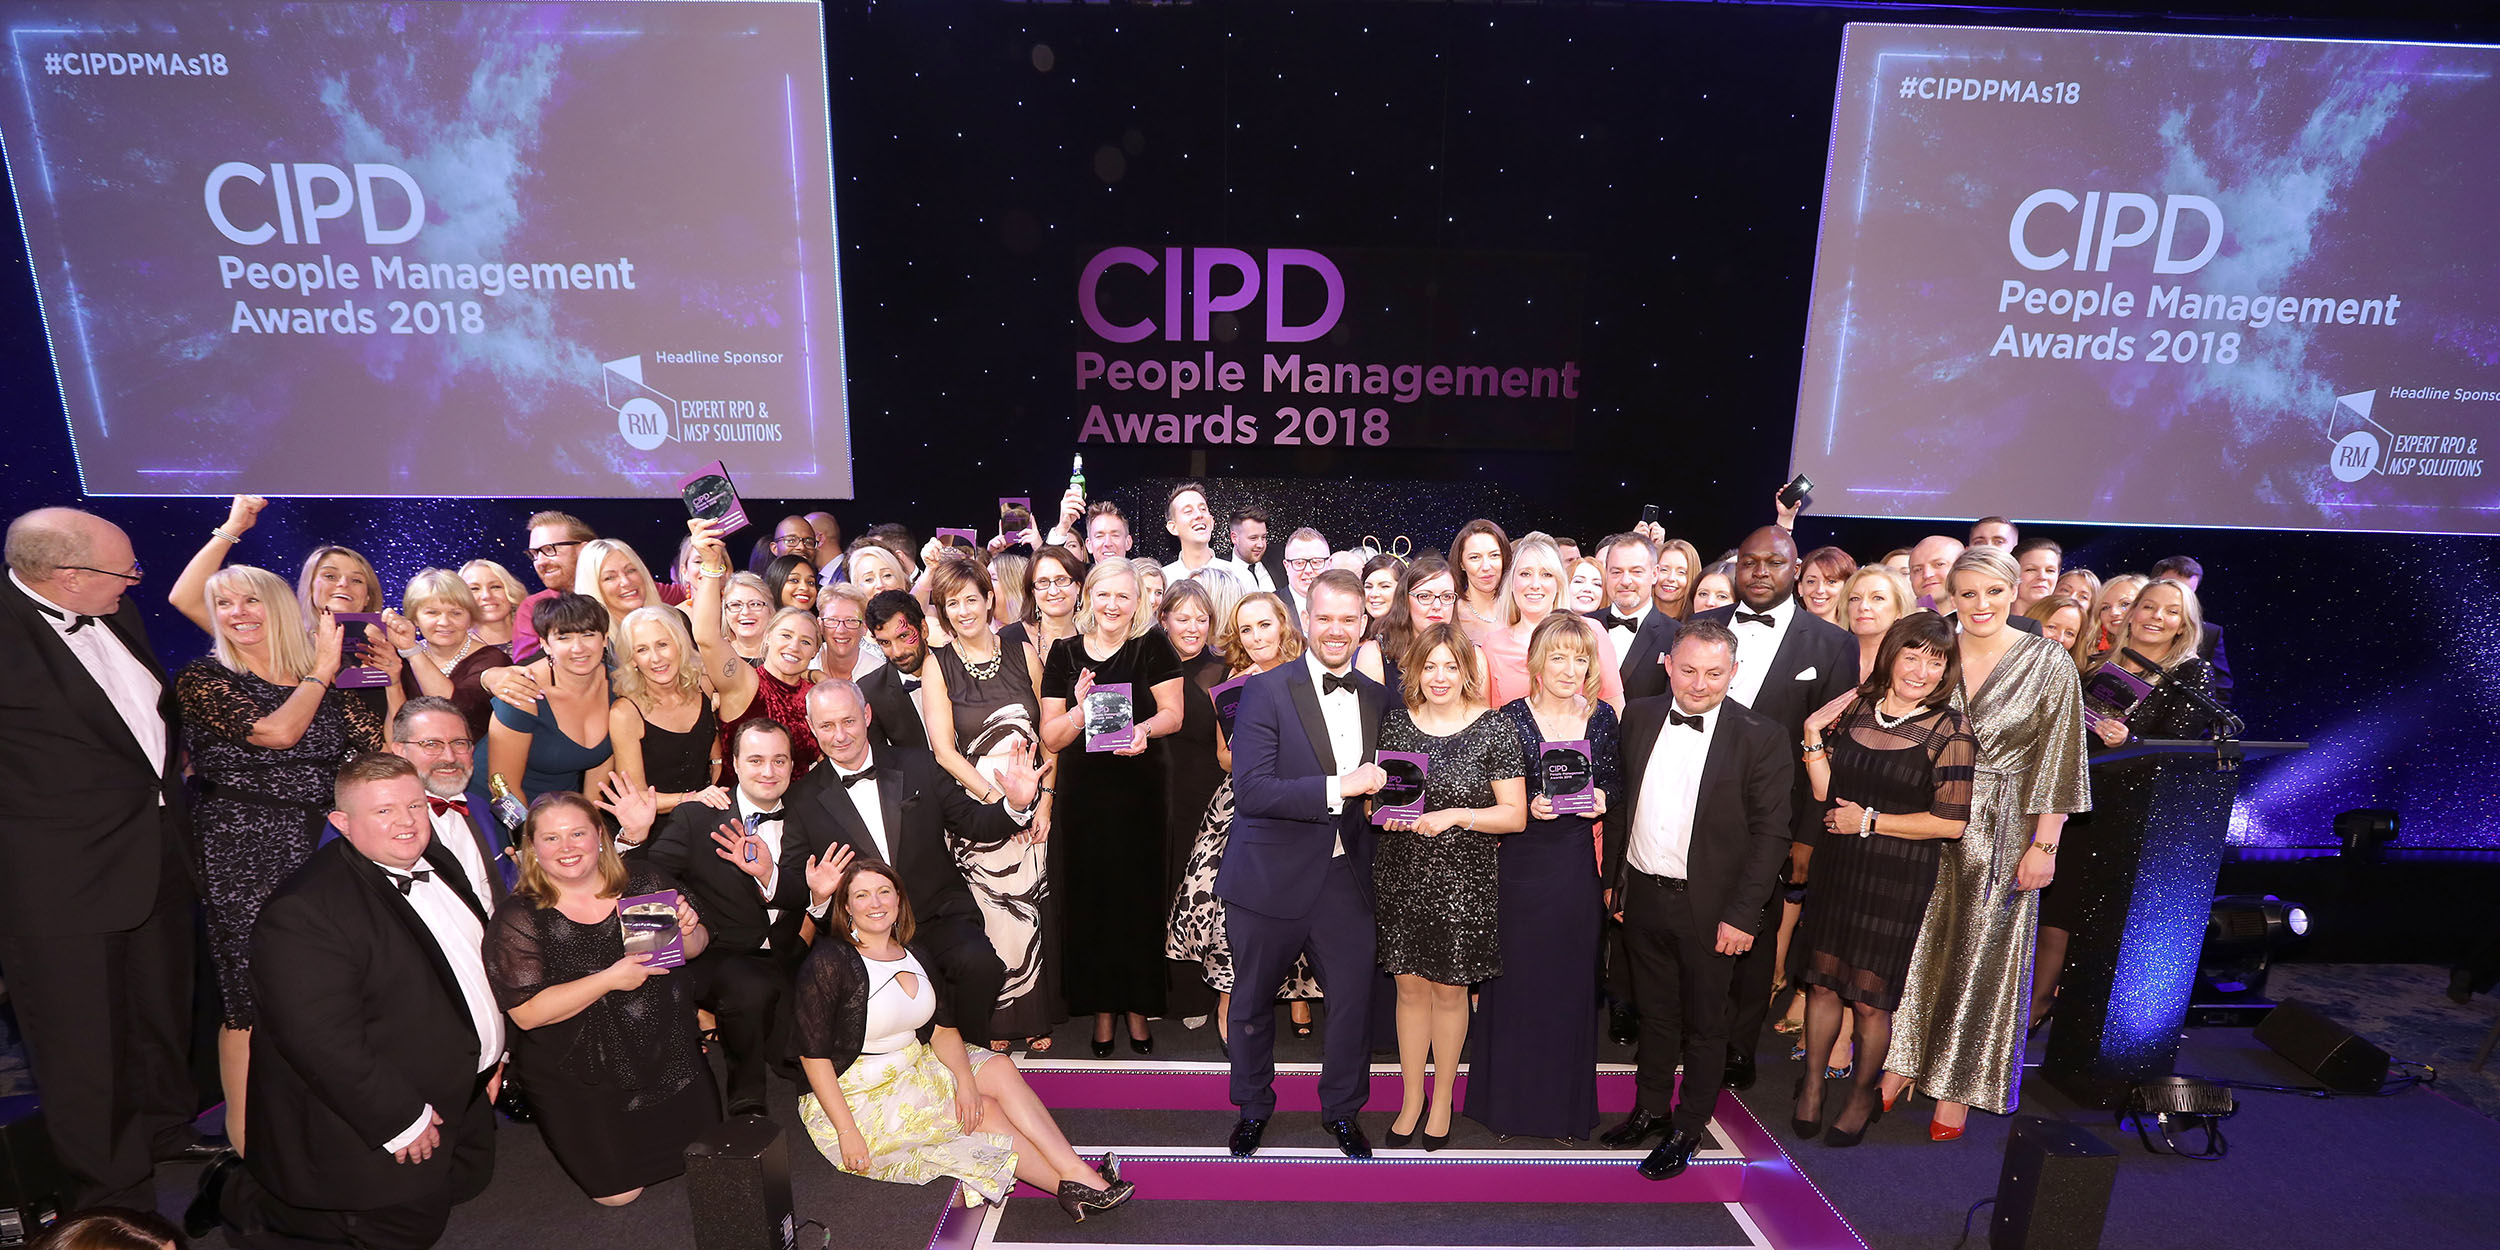 How to be a CIPD People Management Awards winner